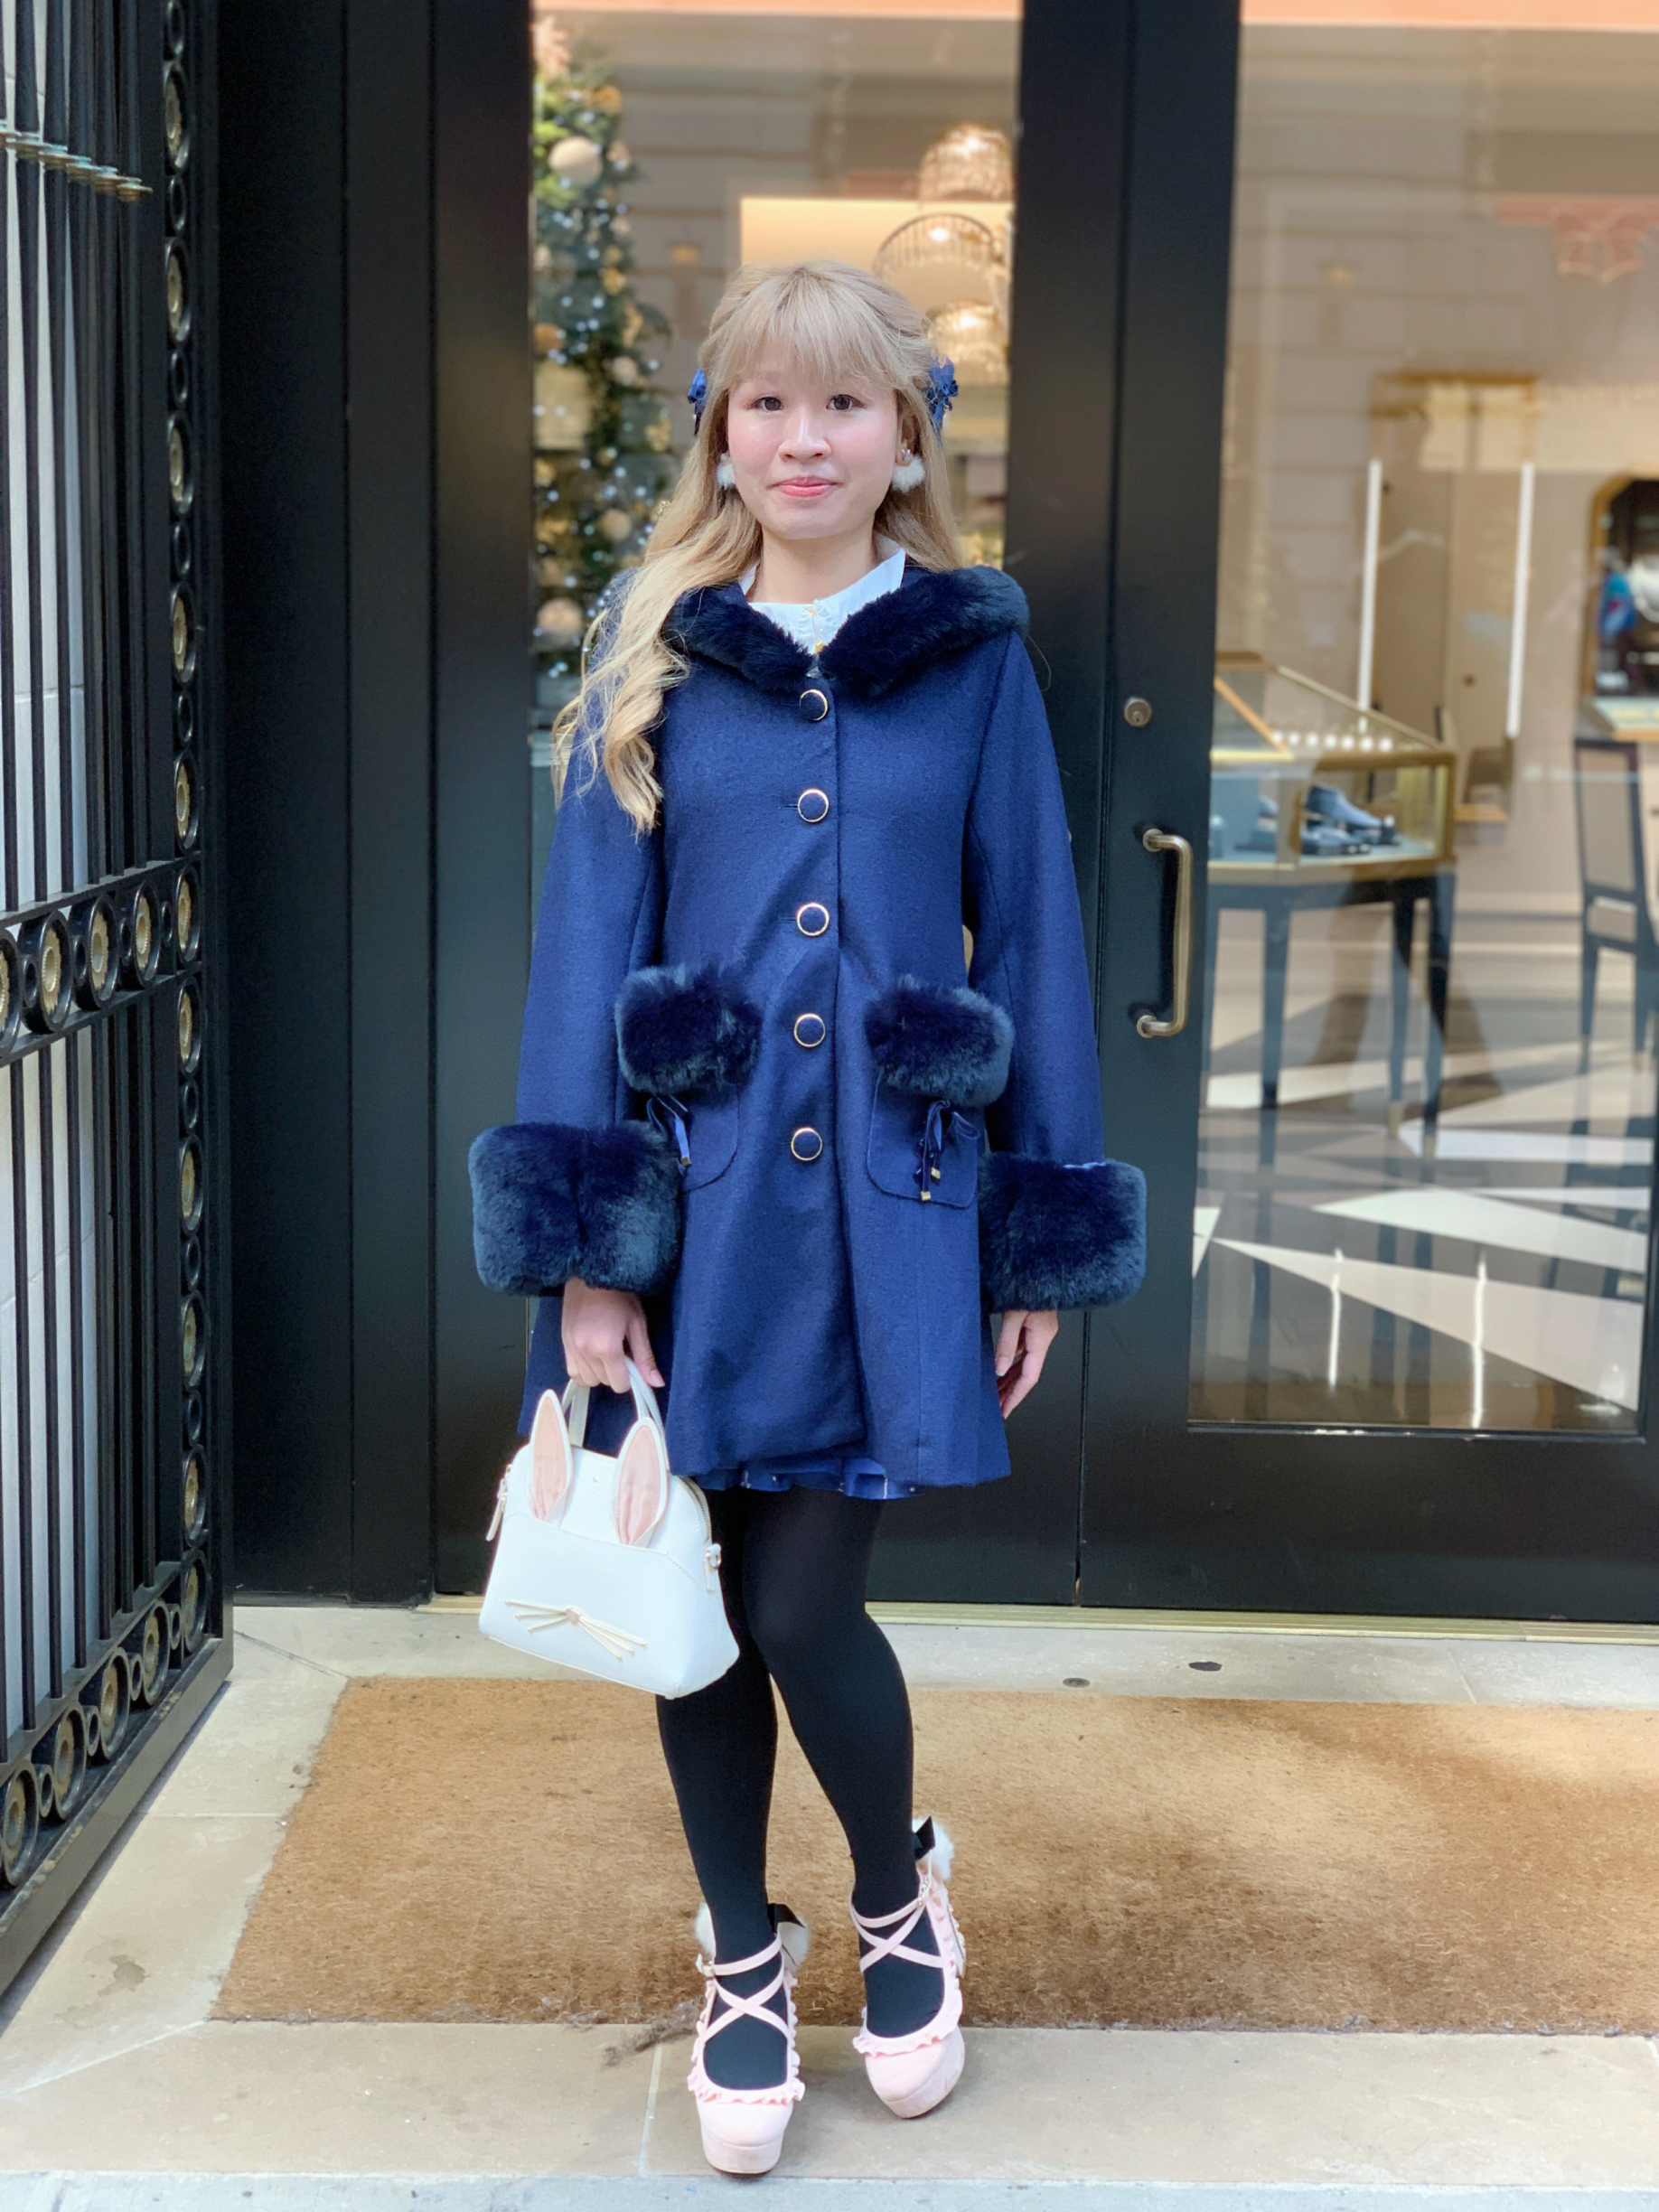 Coat: LIZ LISA; hair clips: LIZ LISA; earrings: Kate Spade New York; bag: Kate Spade New York; shoes: LIZ LISA.